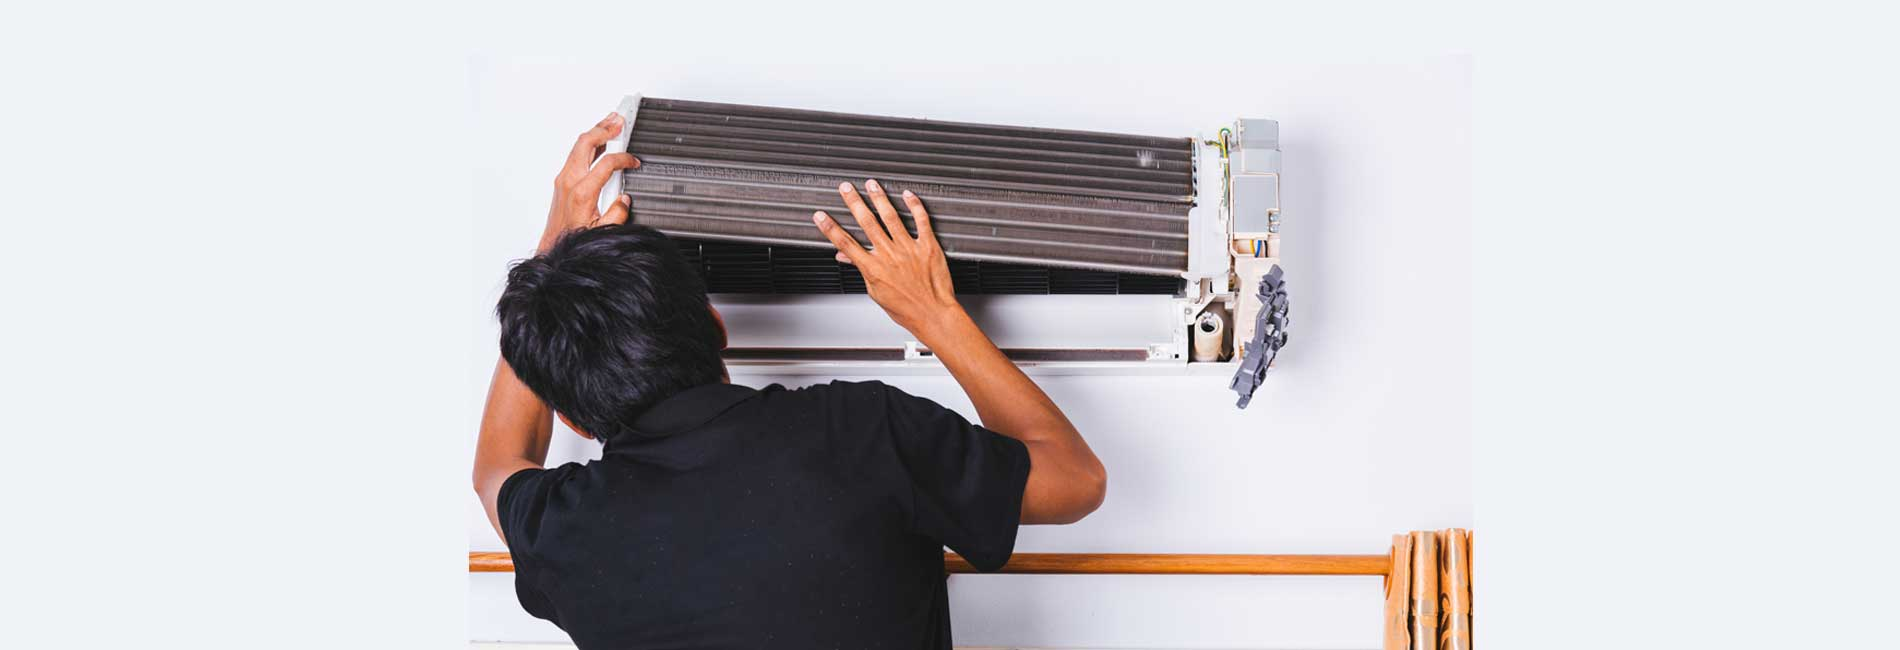 Panasonic AC Installation in Pulianthope